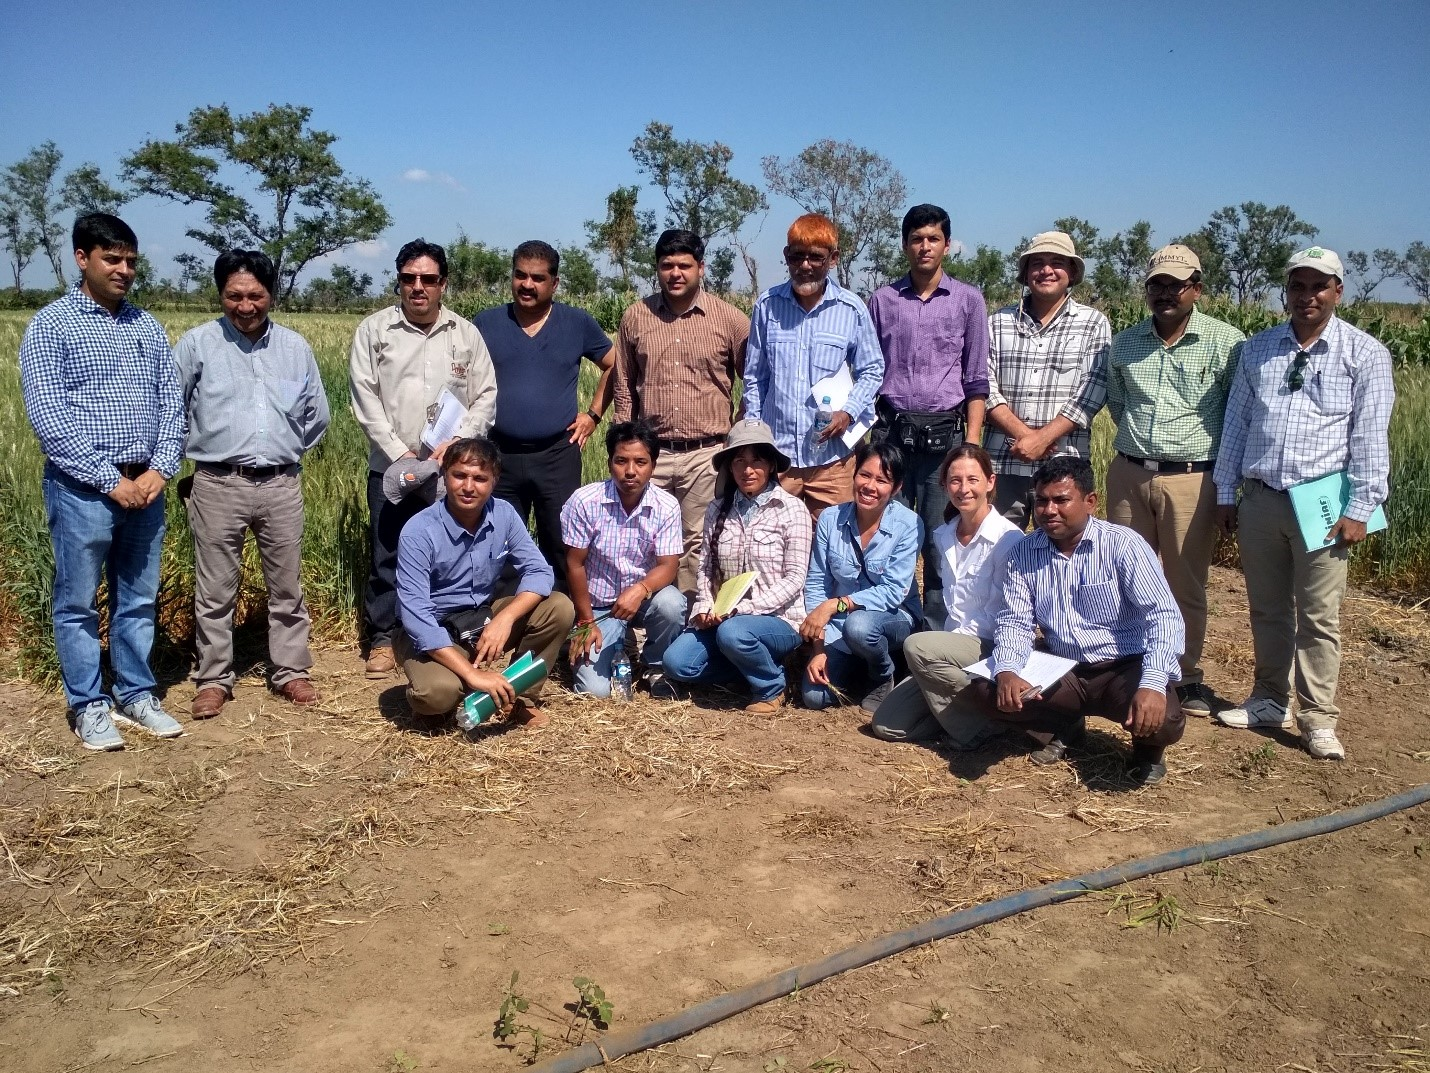 Trainees at the CAICO farm in Okinawa, Bolivia. Photo: CIMMYT archives